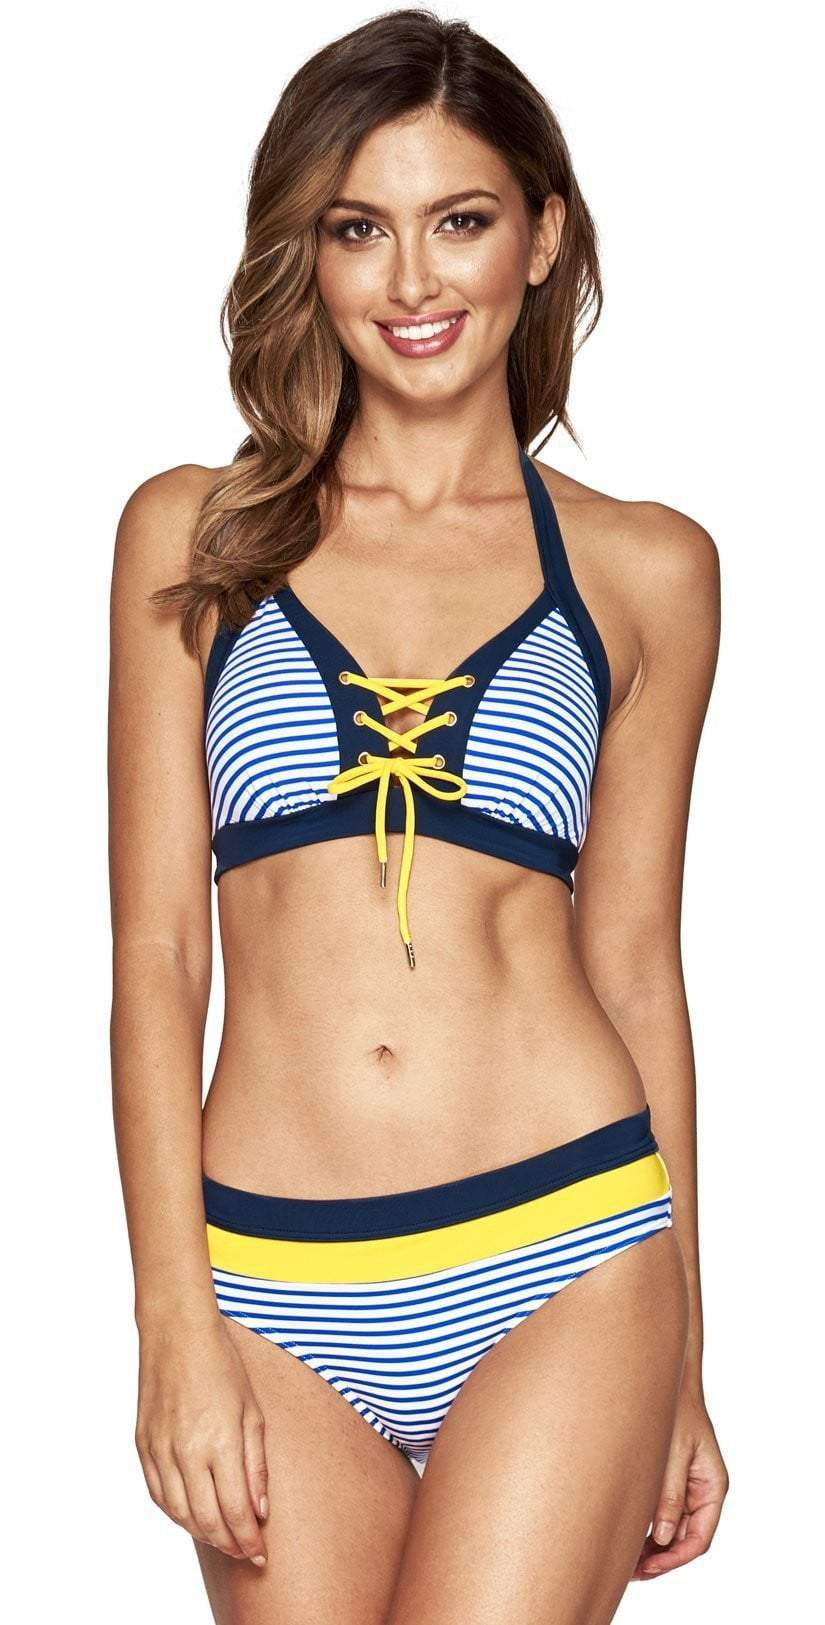 Jets Panama Plunge Lace Up Bra Bikini Top J4870-OCNC: